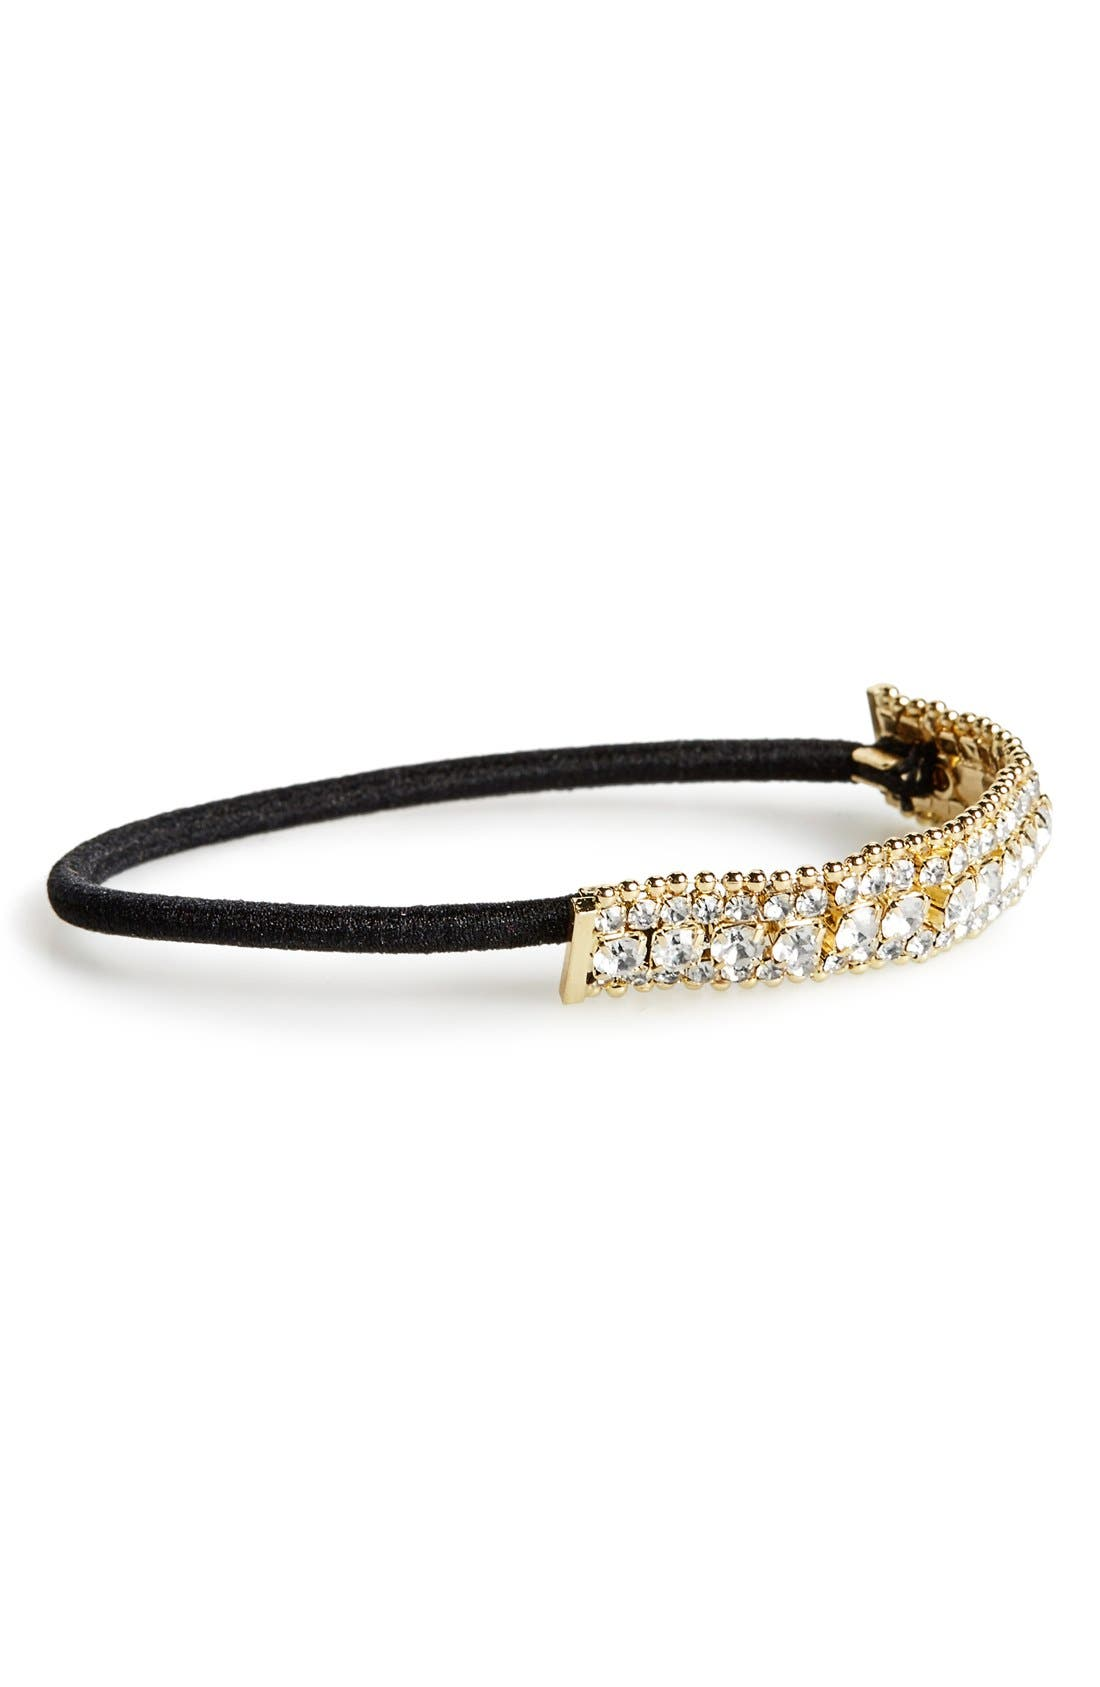 Alternate Image 1 Selected - Cara Crystal & Ball Chain Ponytail Holder